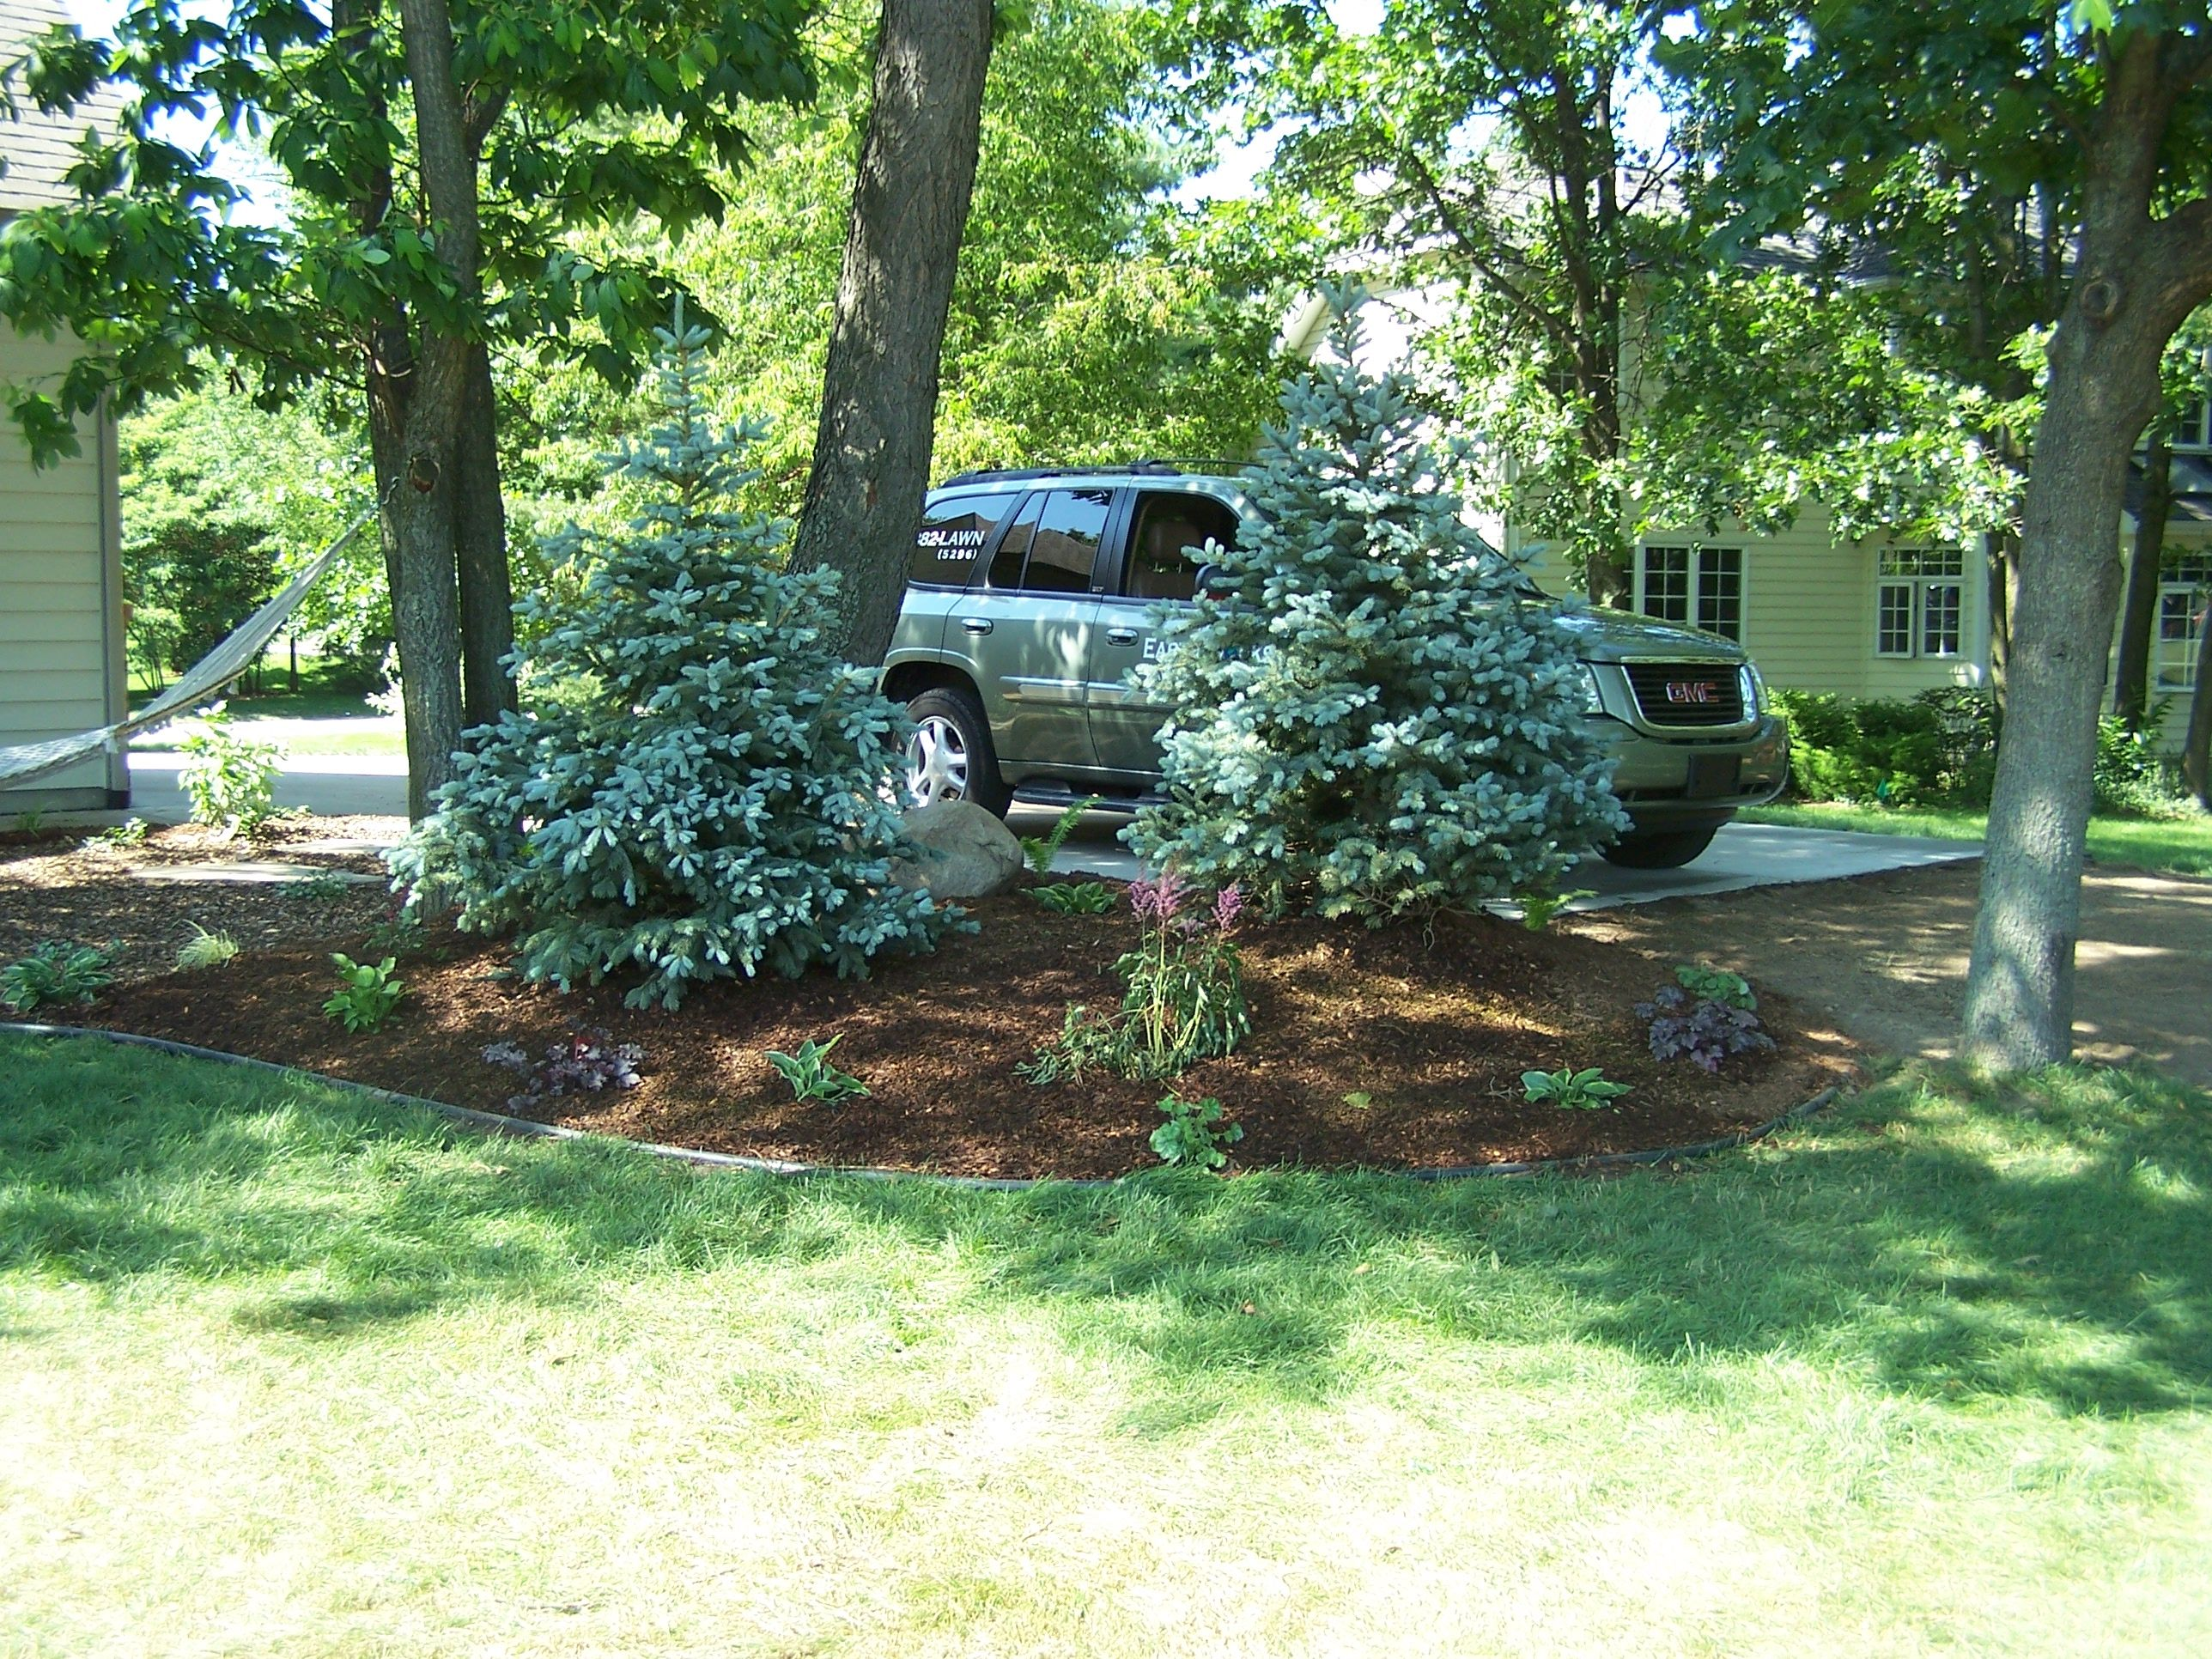 Landscaping Blue Spruce In Landscape For Privacy Portage MI